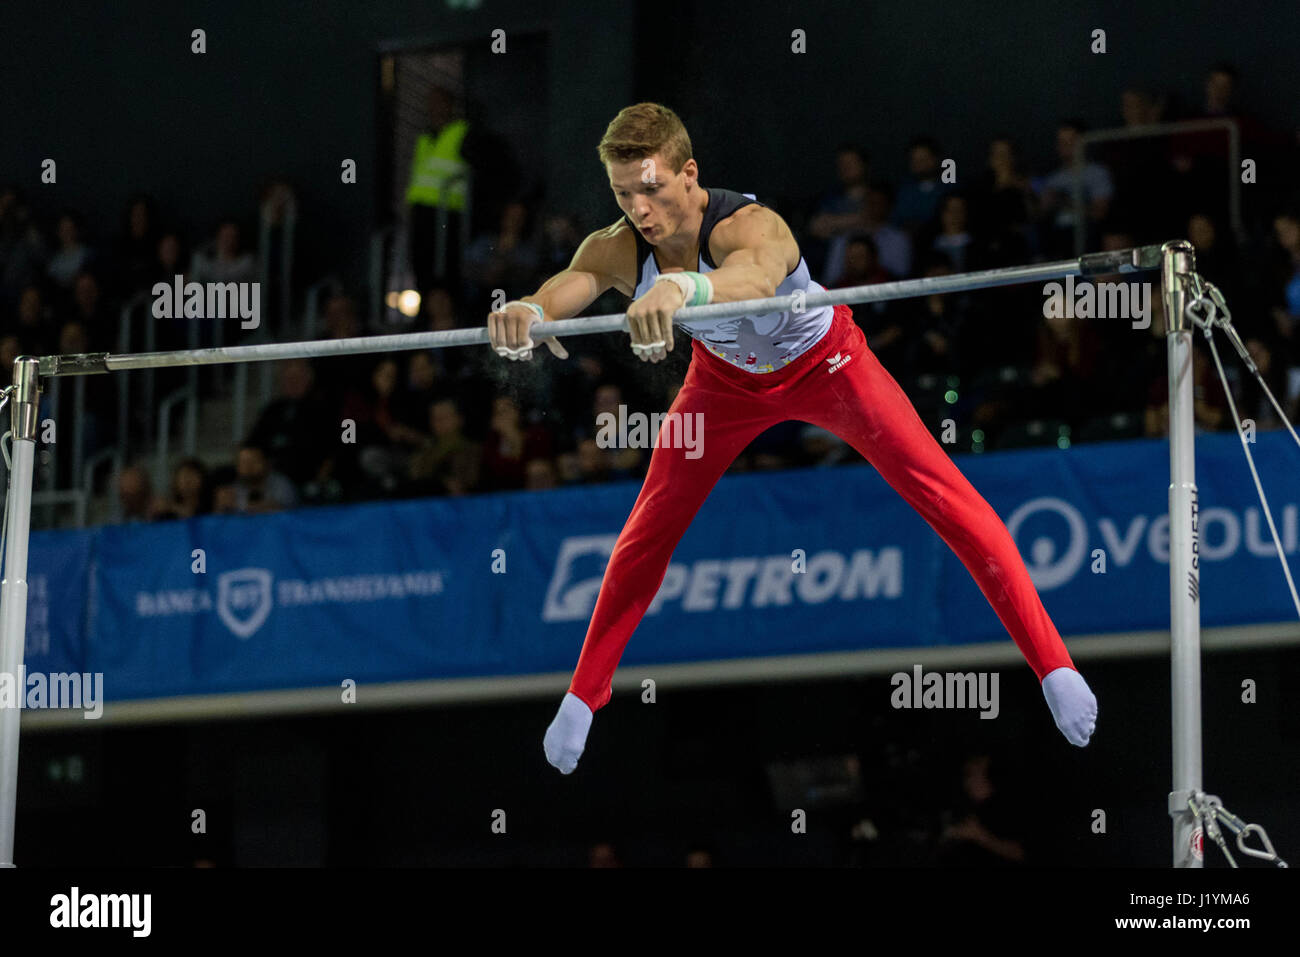 Cluj Napoca, Romania. 21st Apr, 2017. Philipp Herder from Germany performs at the bar at the UEG European Championships - Stock Image